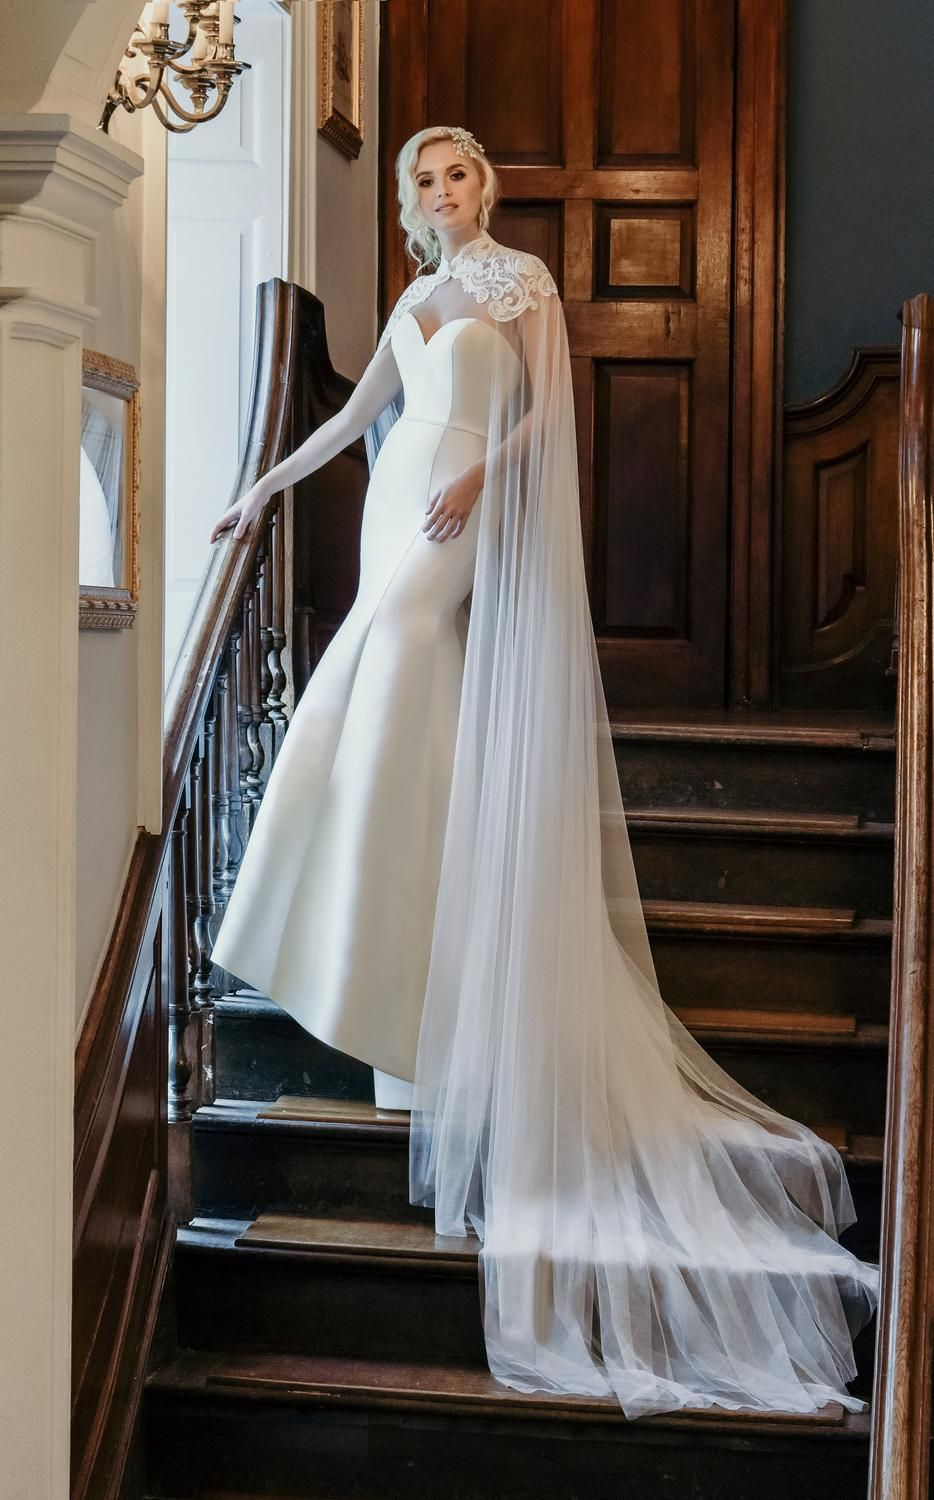 ace78cc5470c Plain strapless fishtail wedding dress with lace and tulle cape ...